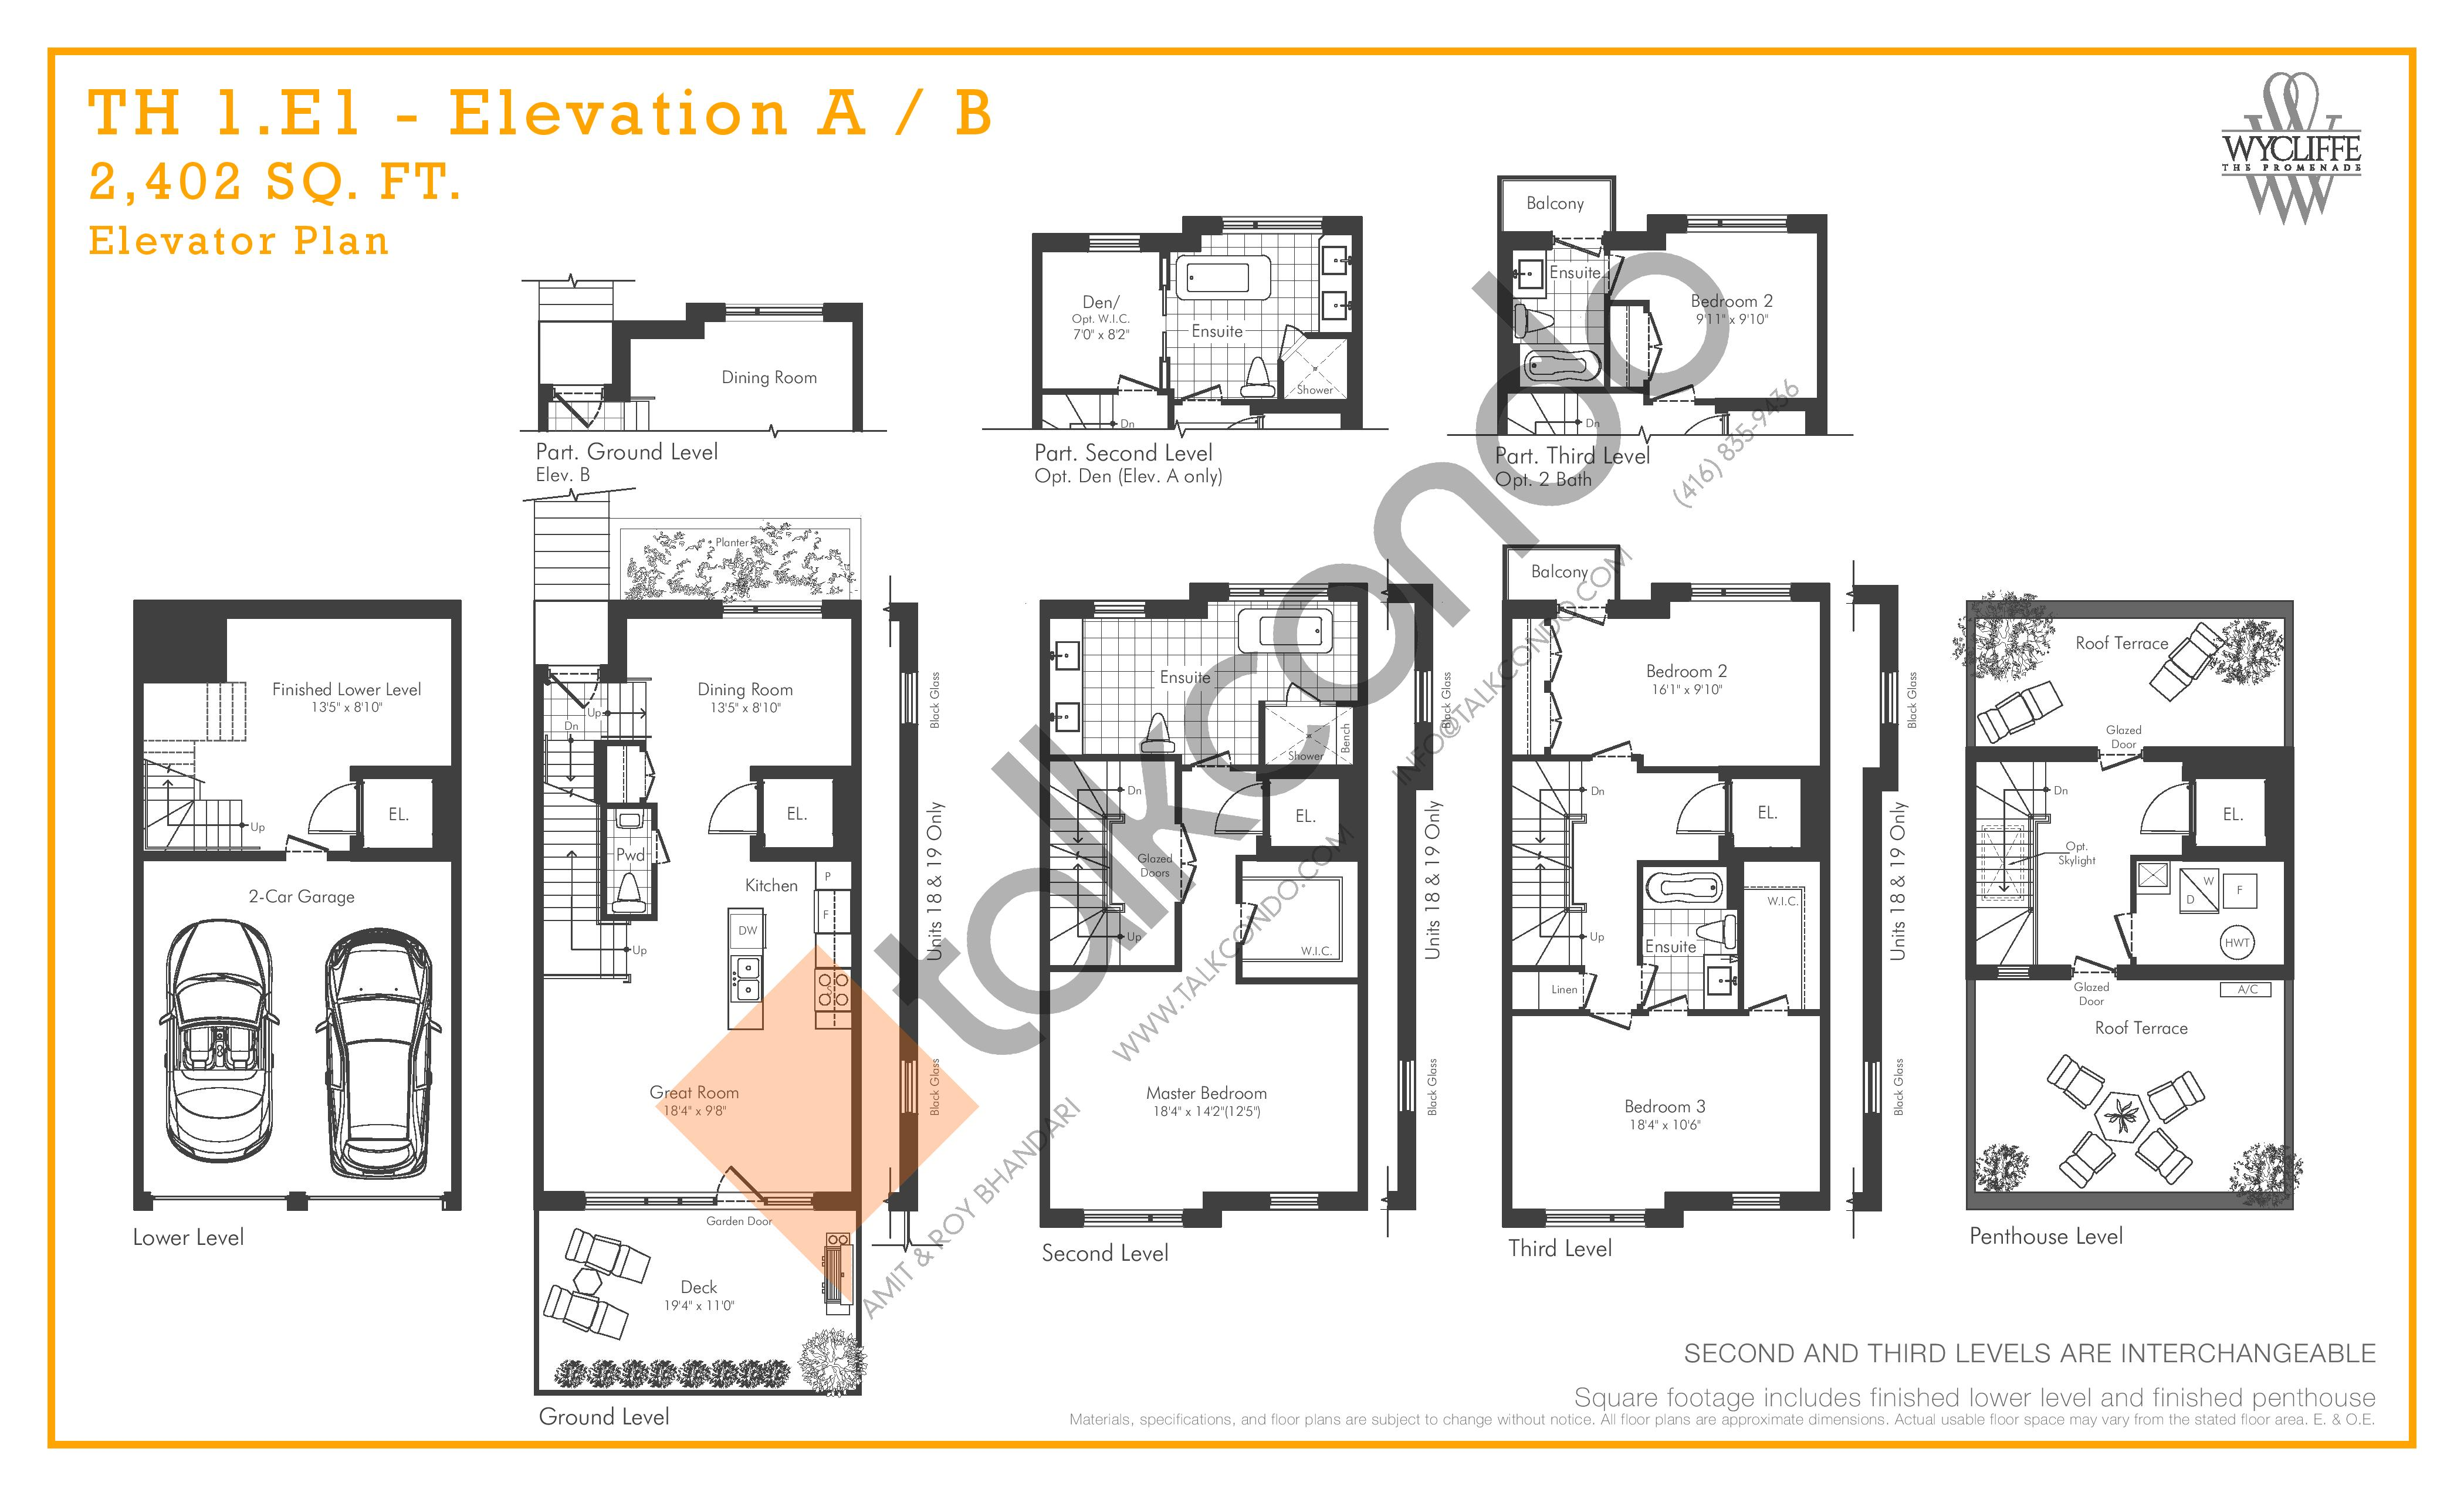 TH 1.E1 - Elevation A/B Elevator Plan Floor Plan at Wycliffe at the Promenade - 2402 sq.ft